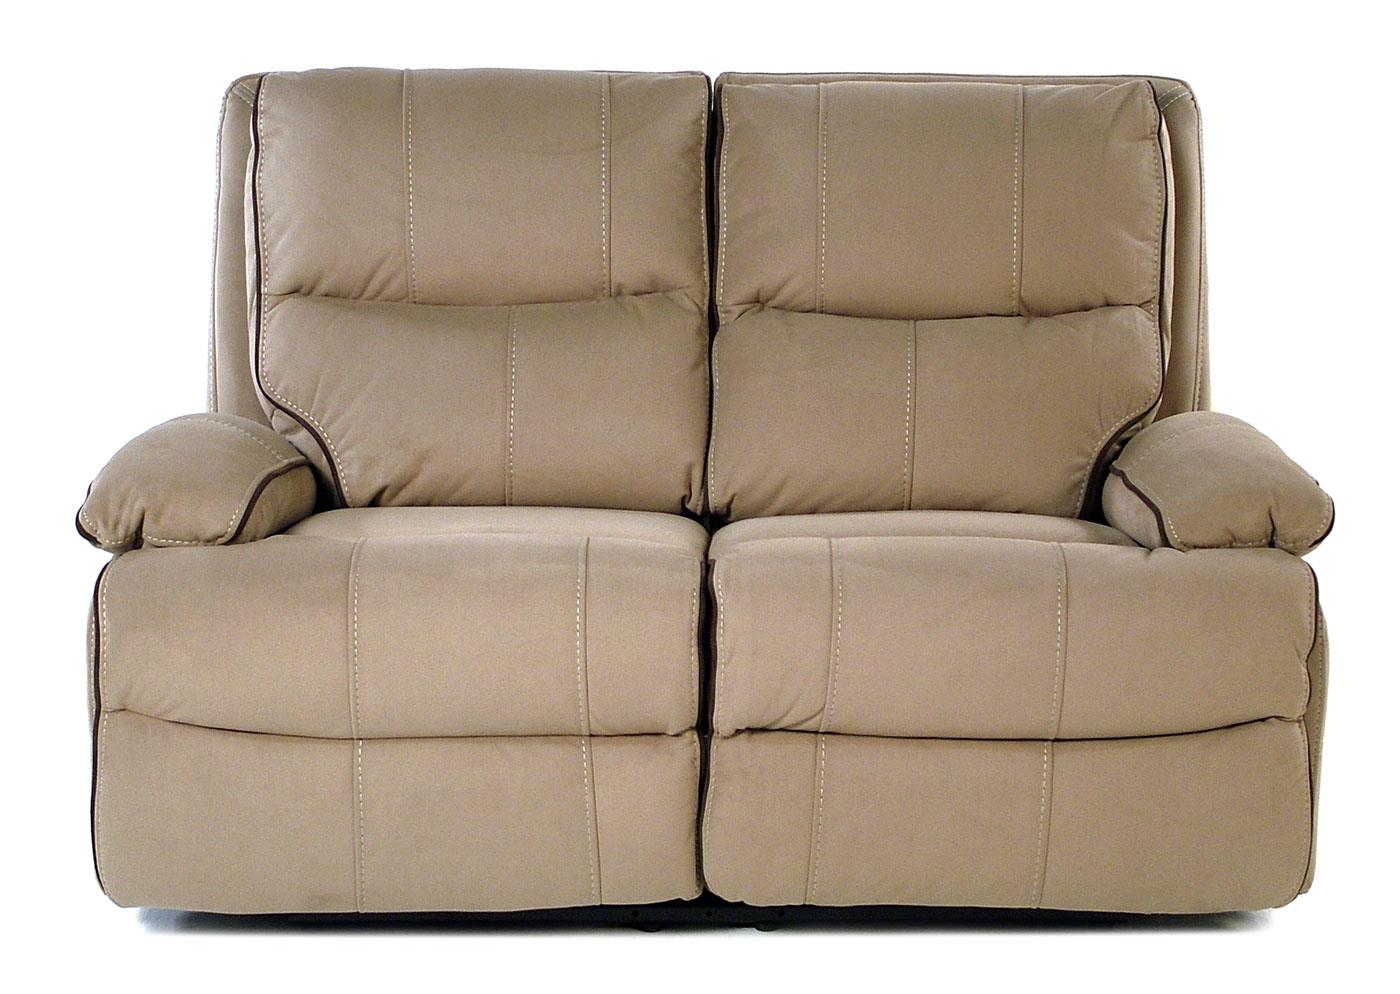 Madison Manor Bradford Reclining Loveseat - Item Number: 9795-2